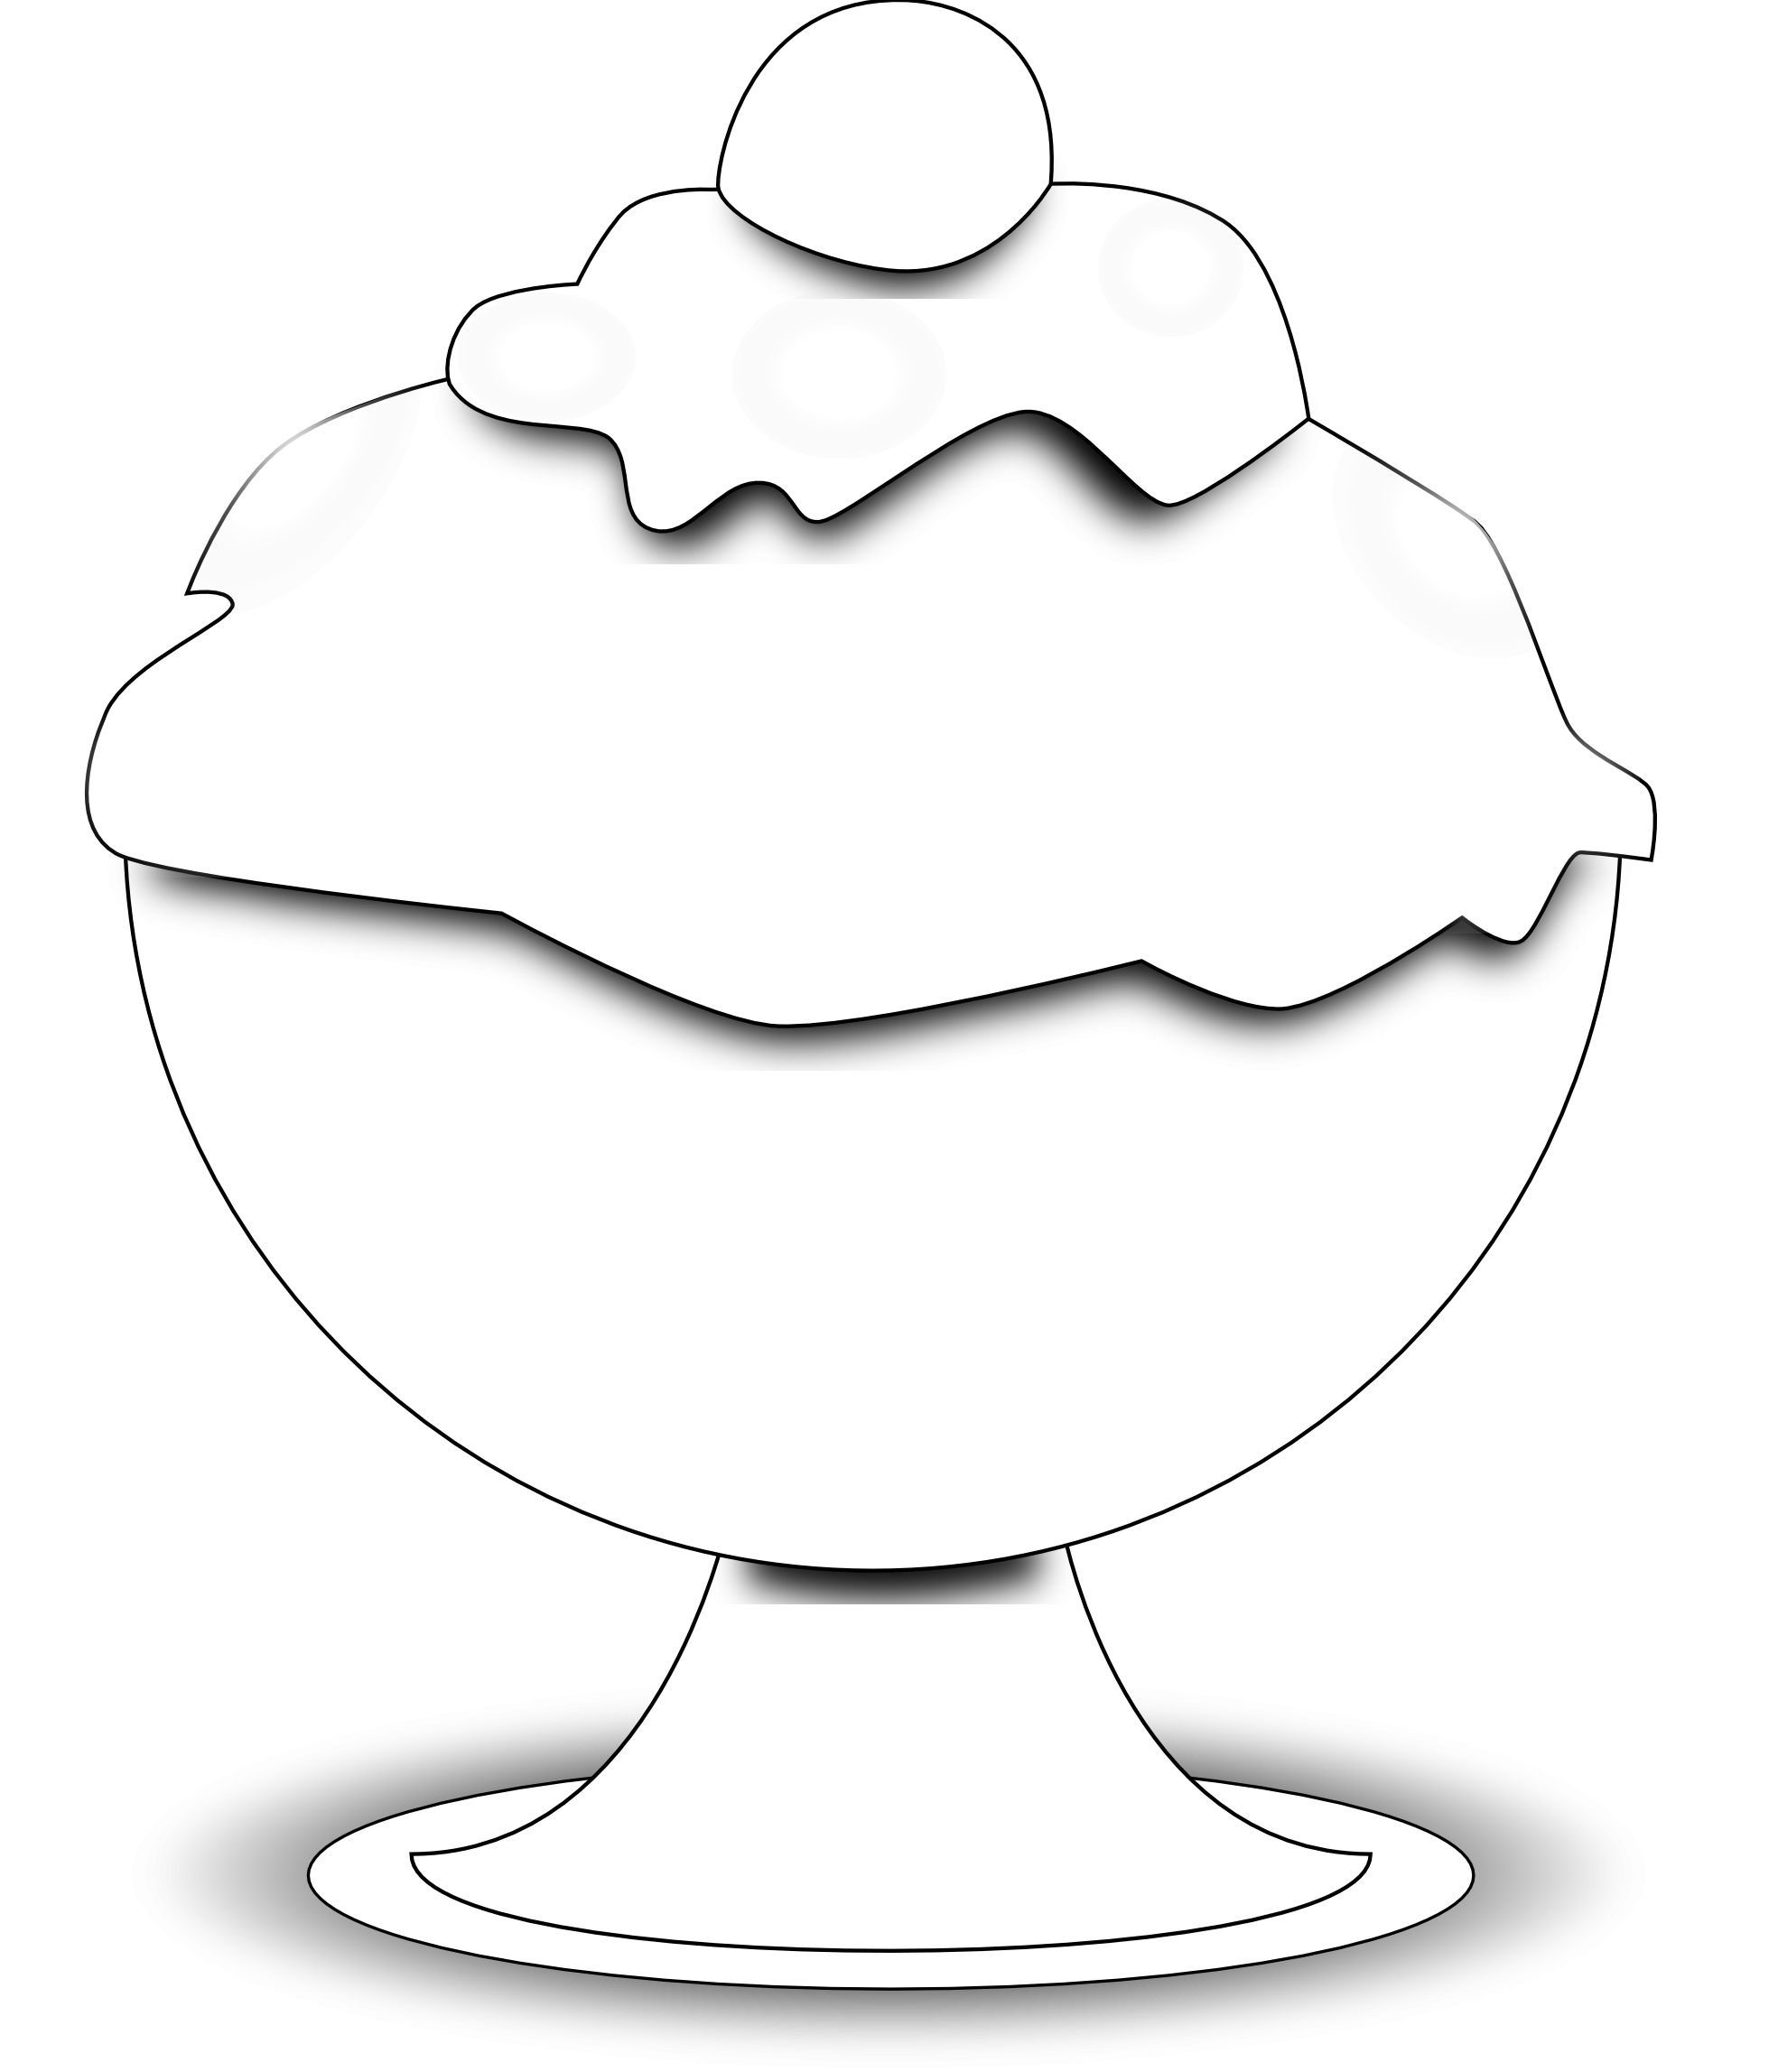 1969x2295 Ice Cream Black White Melting Ice Cream Cone Clipart Black